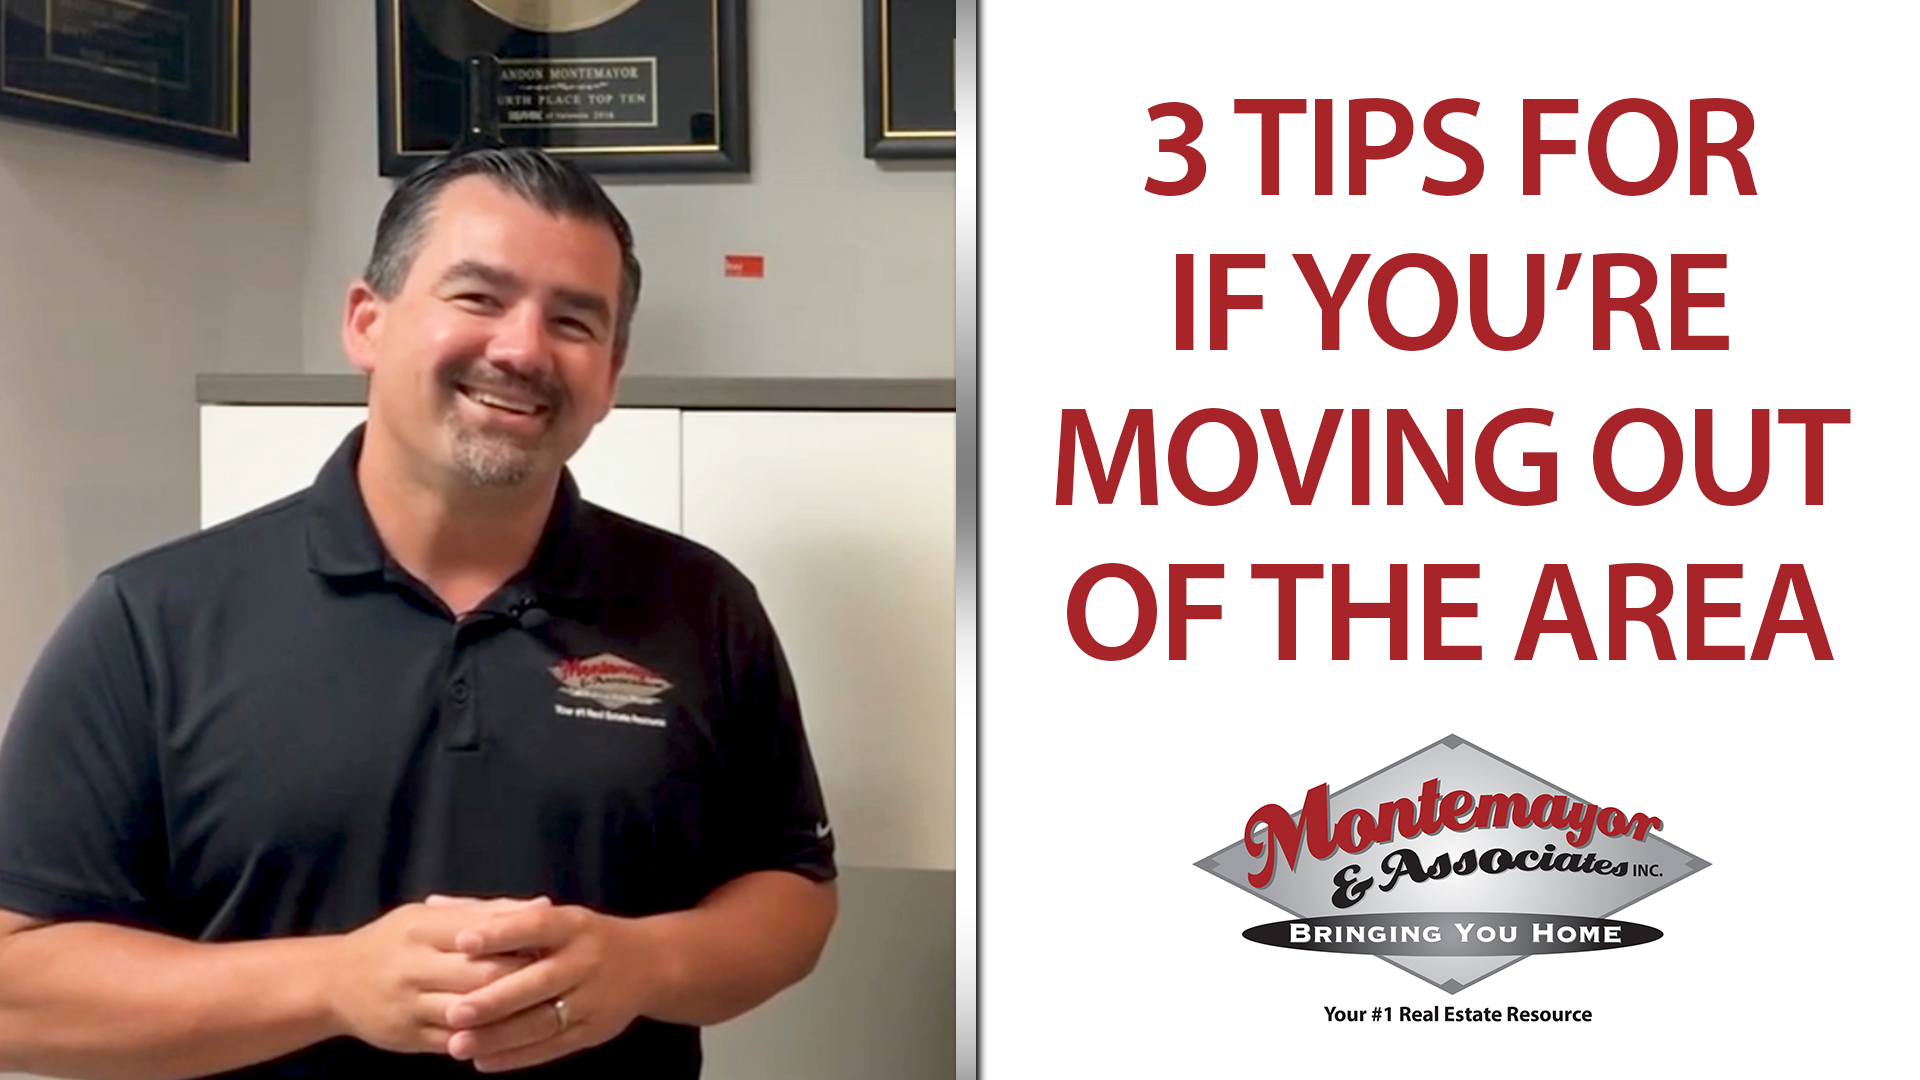 Are You Moving Out of the Area?